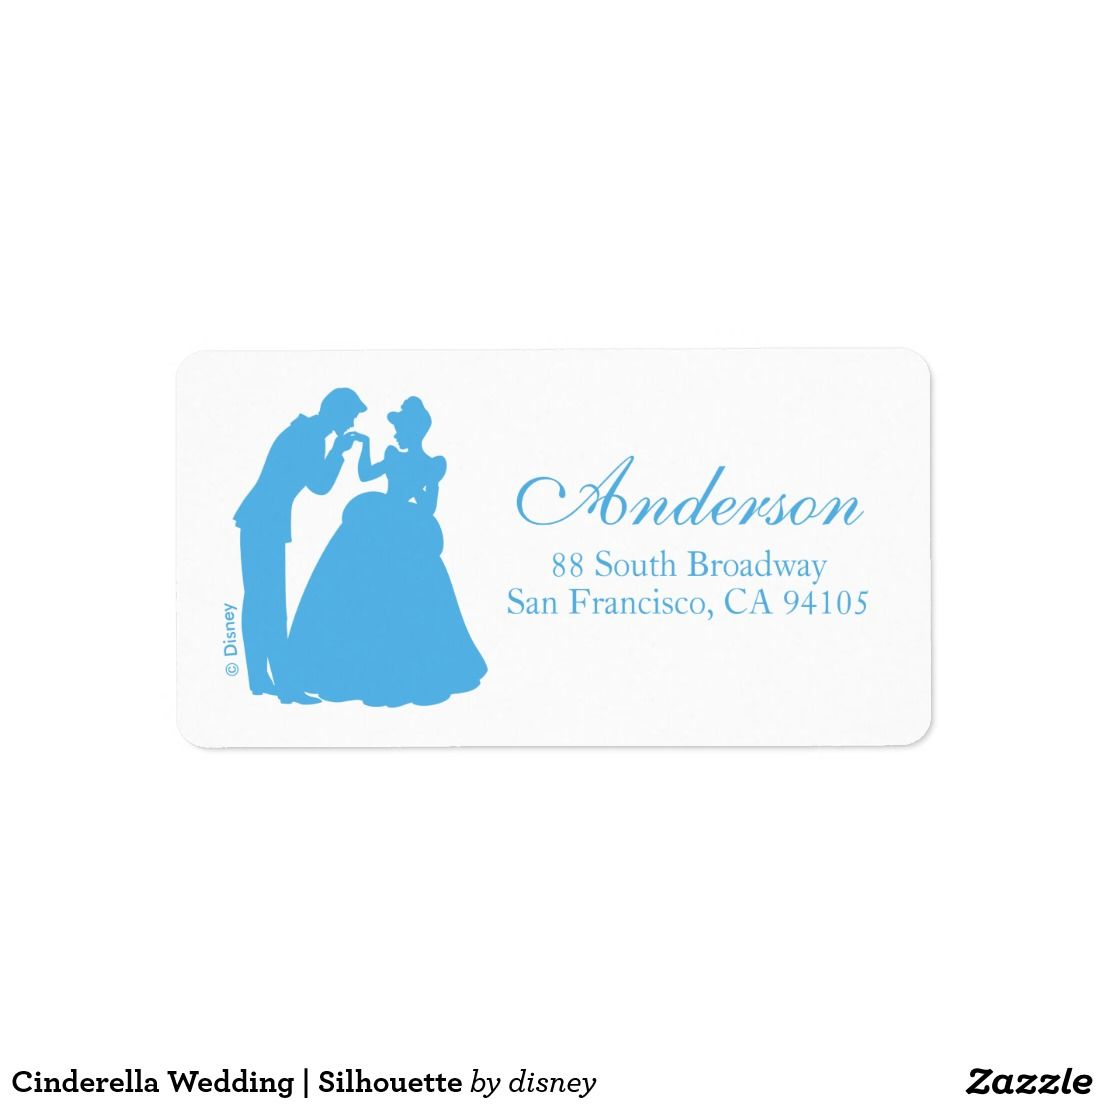 Cinderella Wedding Silhouette Label Wedding Invitations